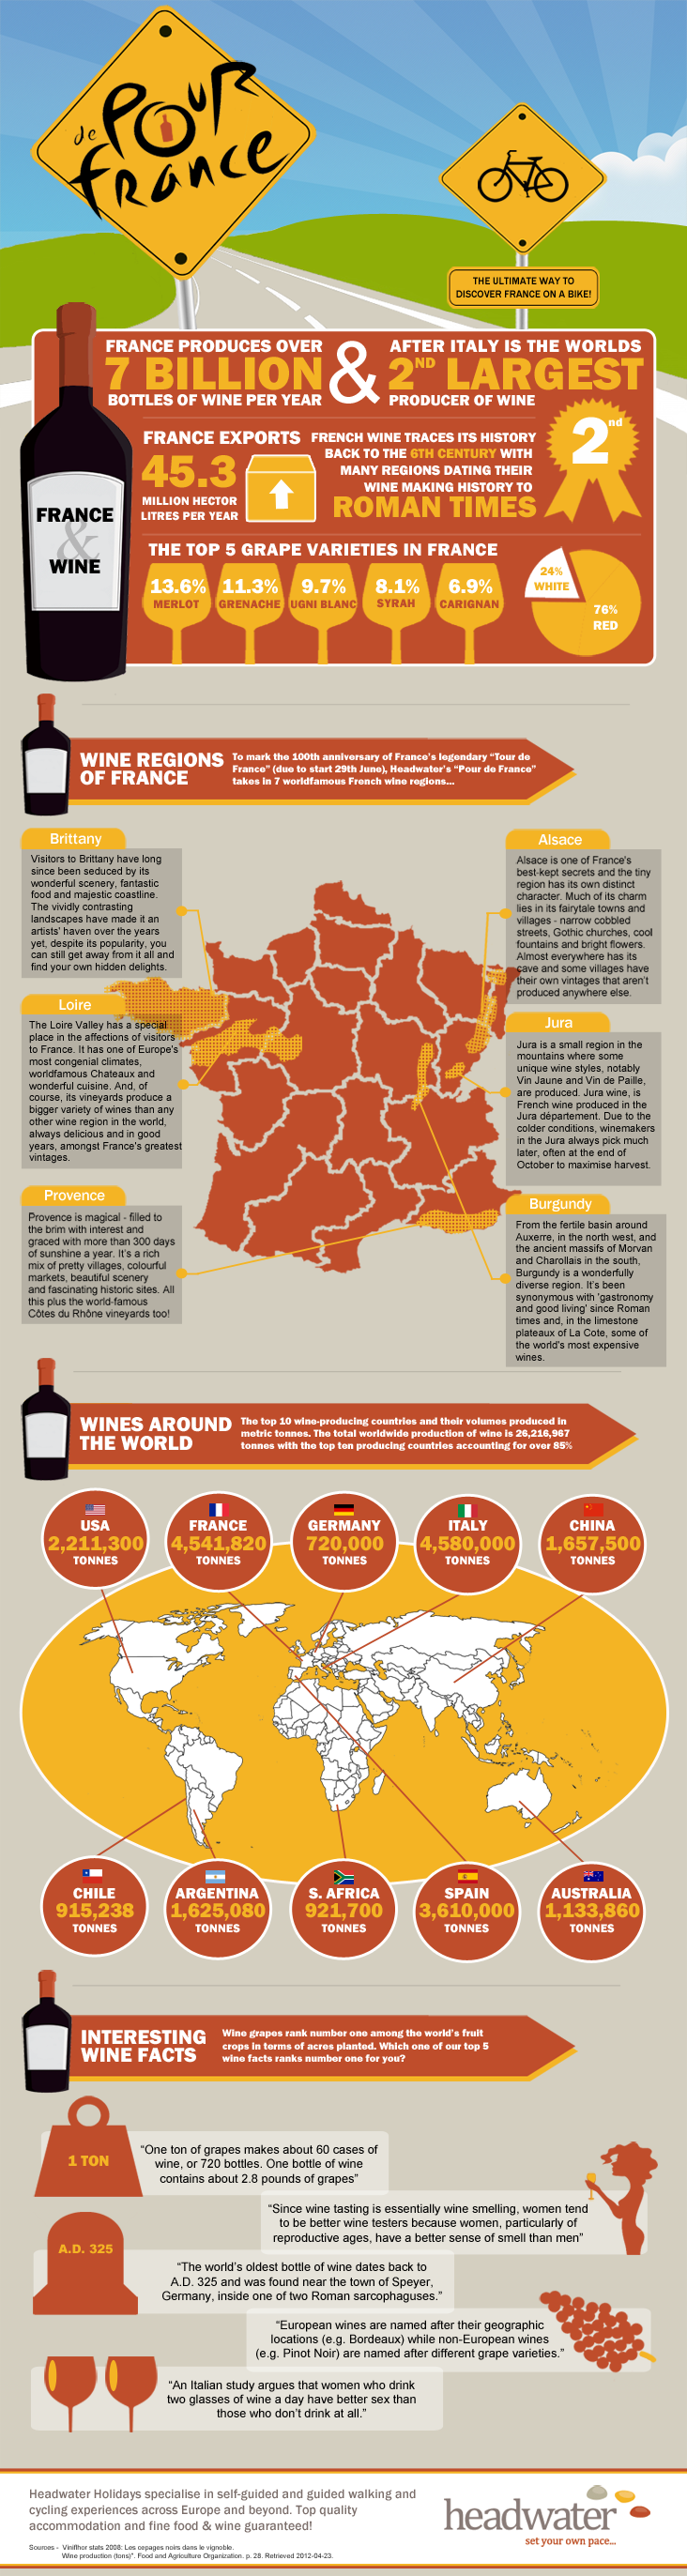 Pour de France, interesting wine facts